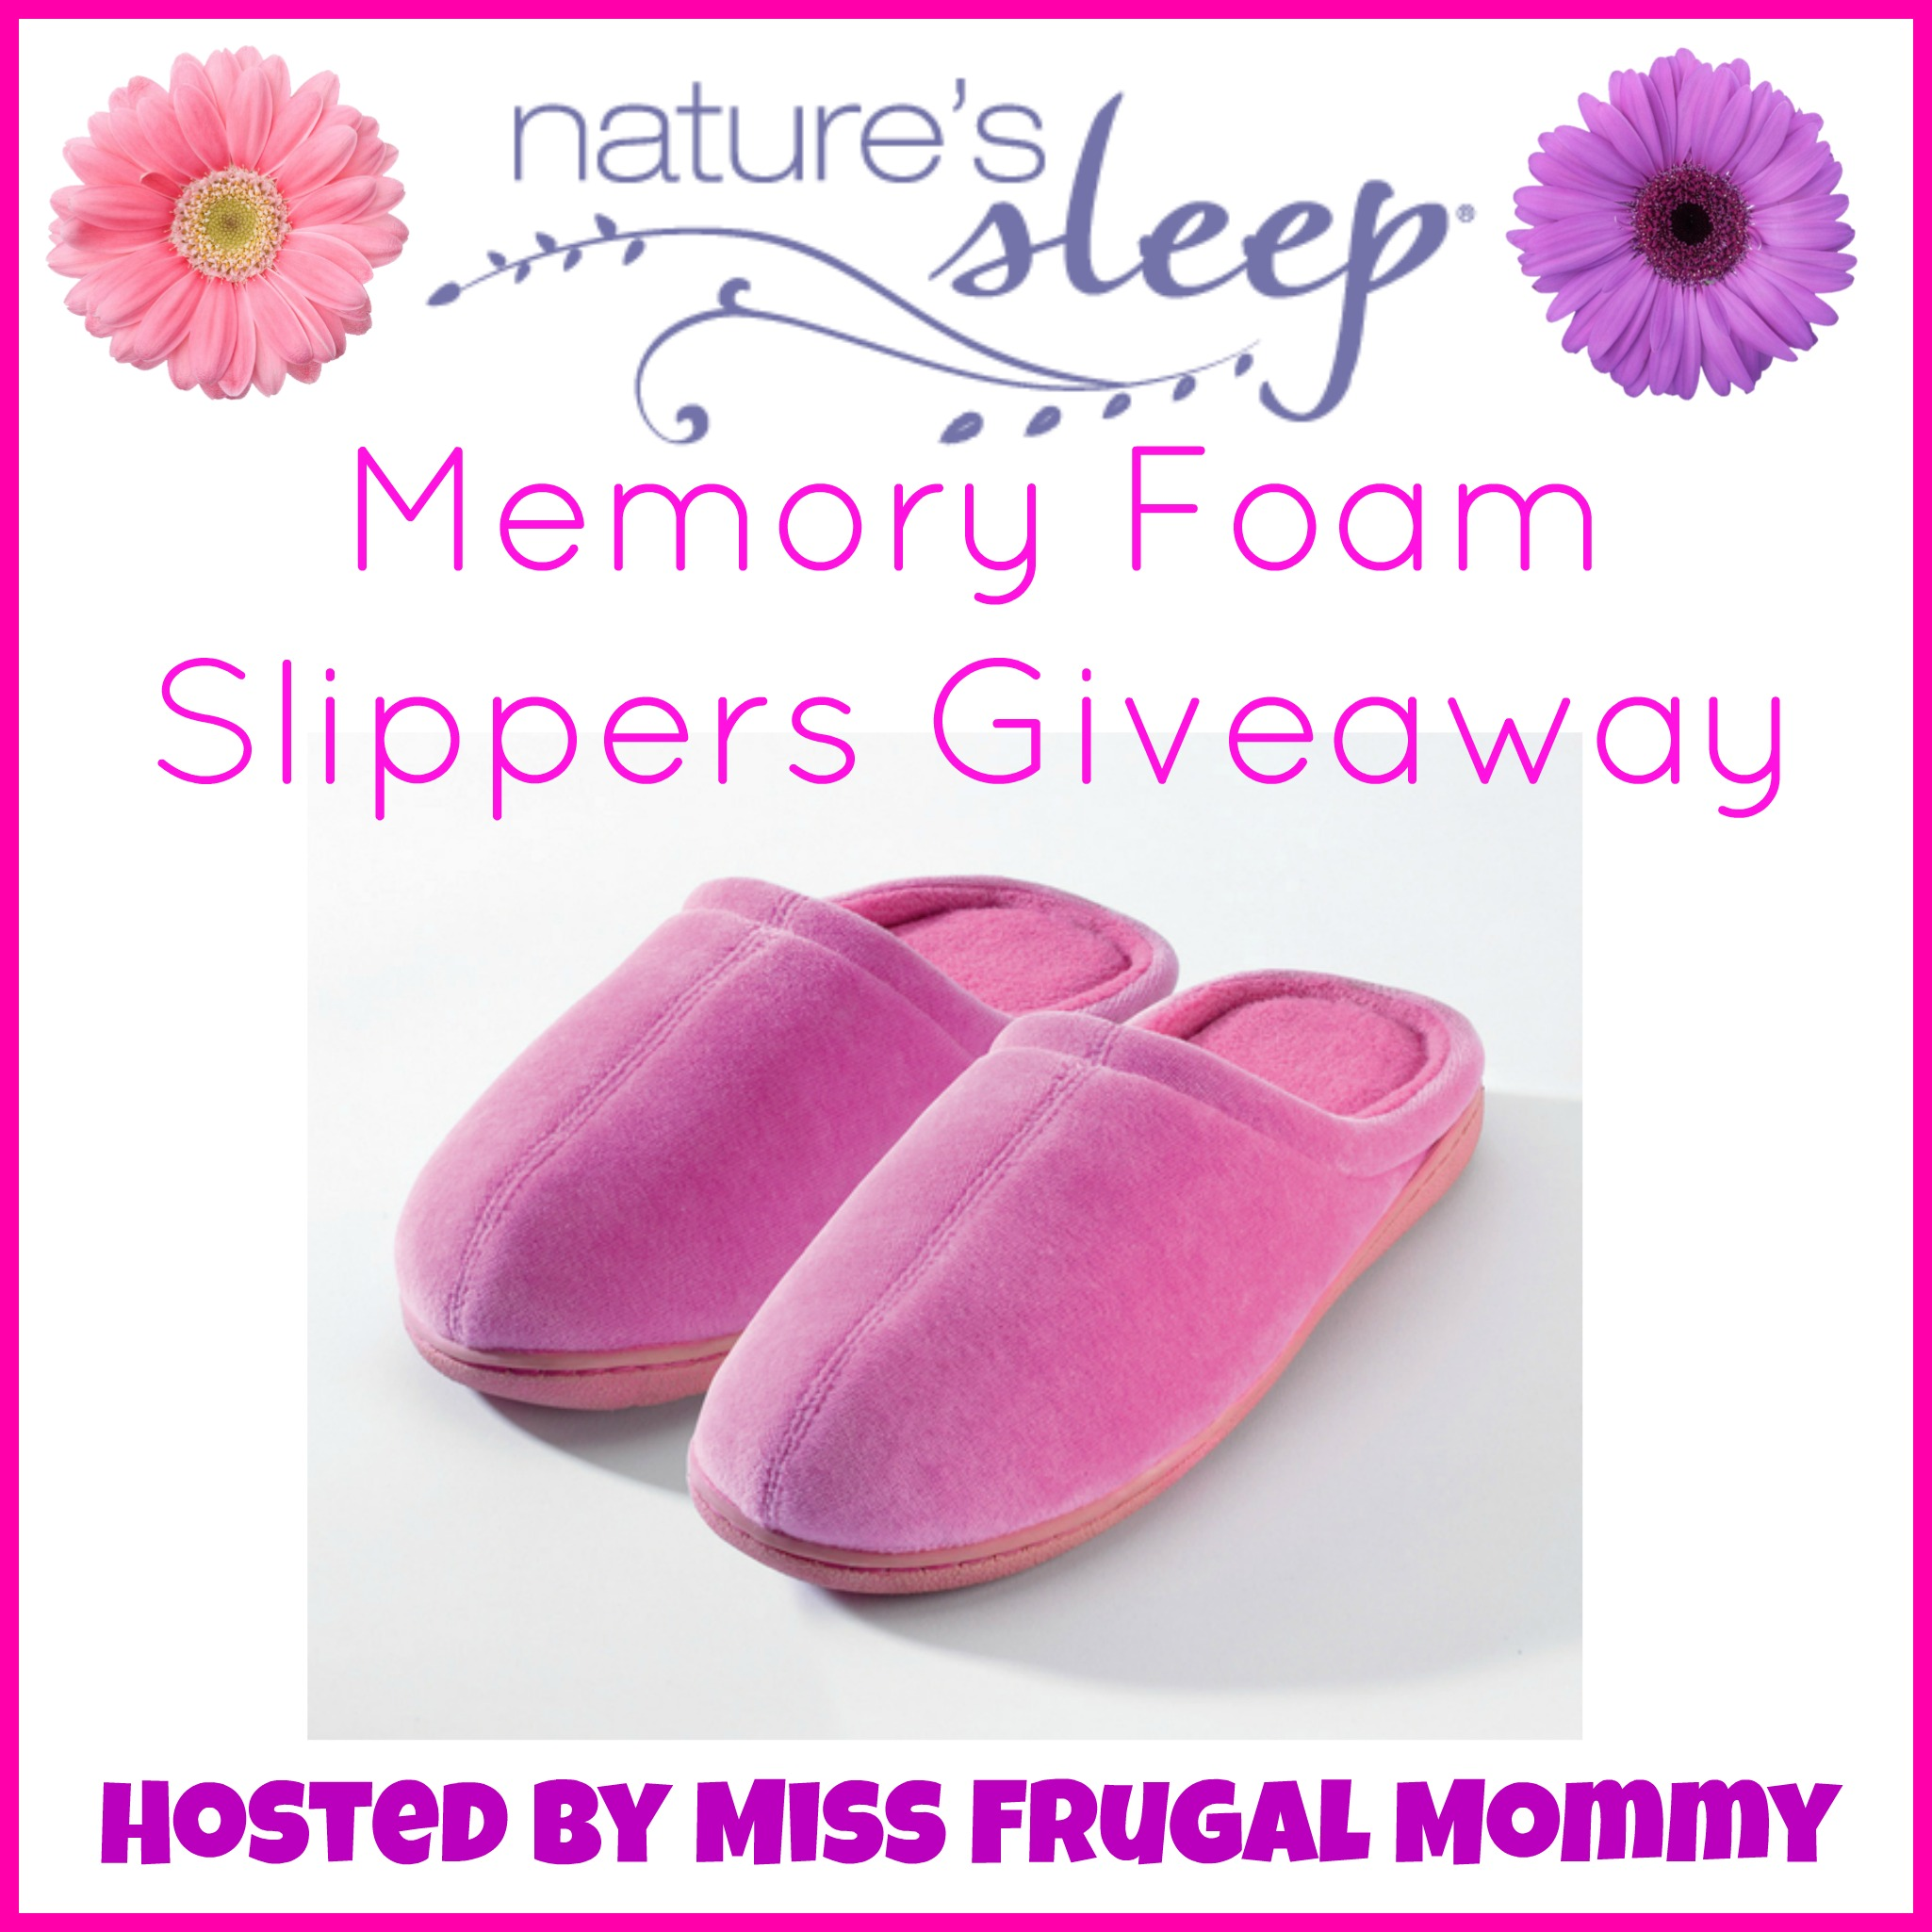 Nature's Sleep Memory Foam Slippers Giveaway